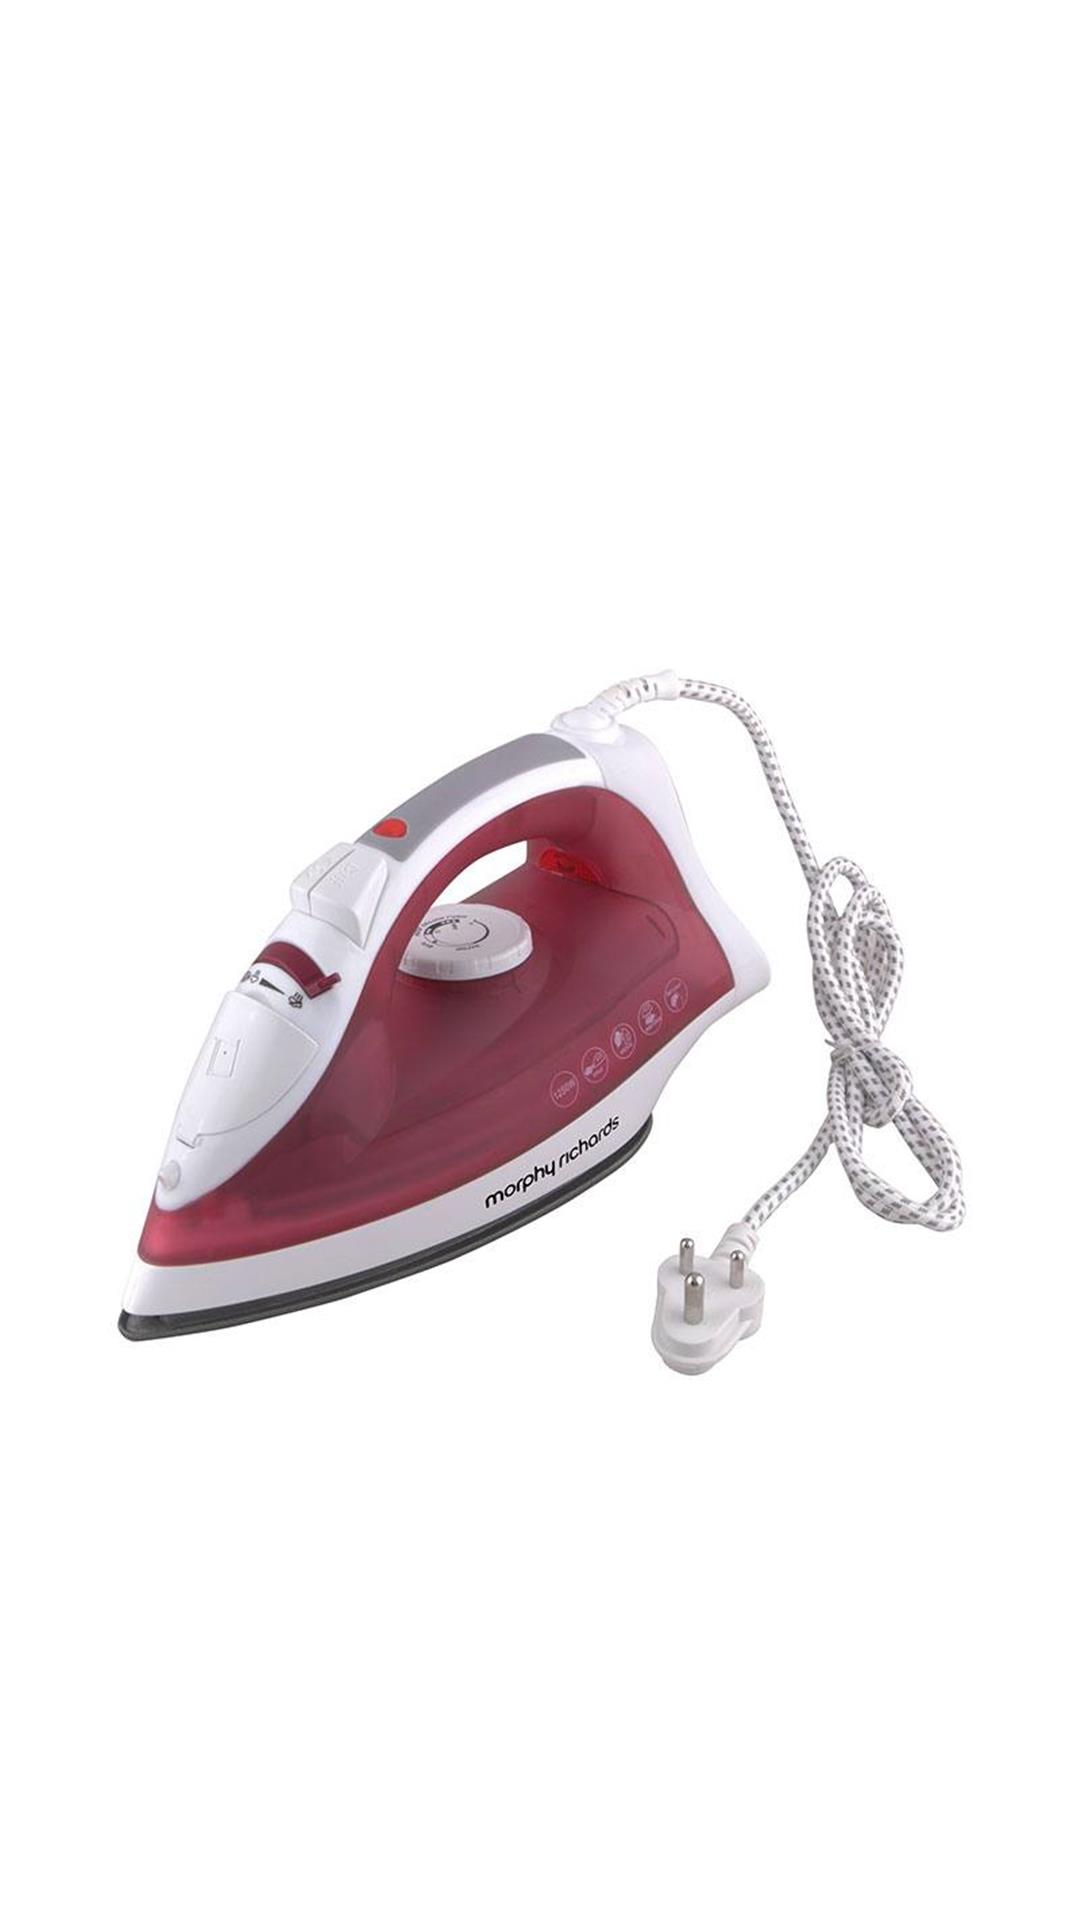 Morphy Richards Glide Steam Iron (Wine Red)